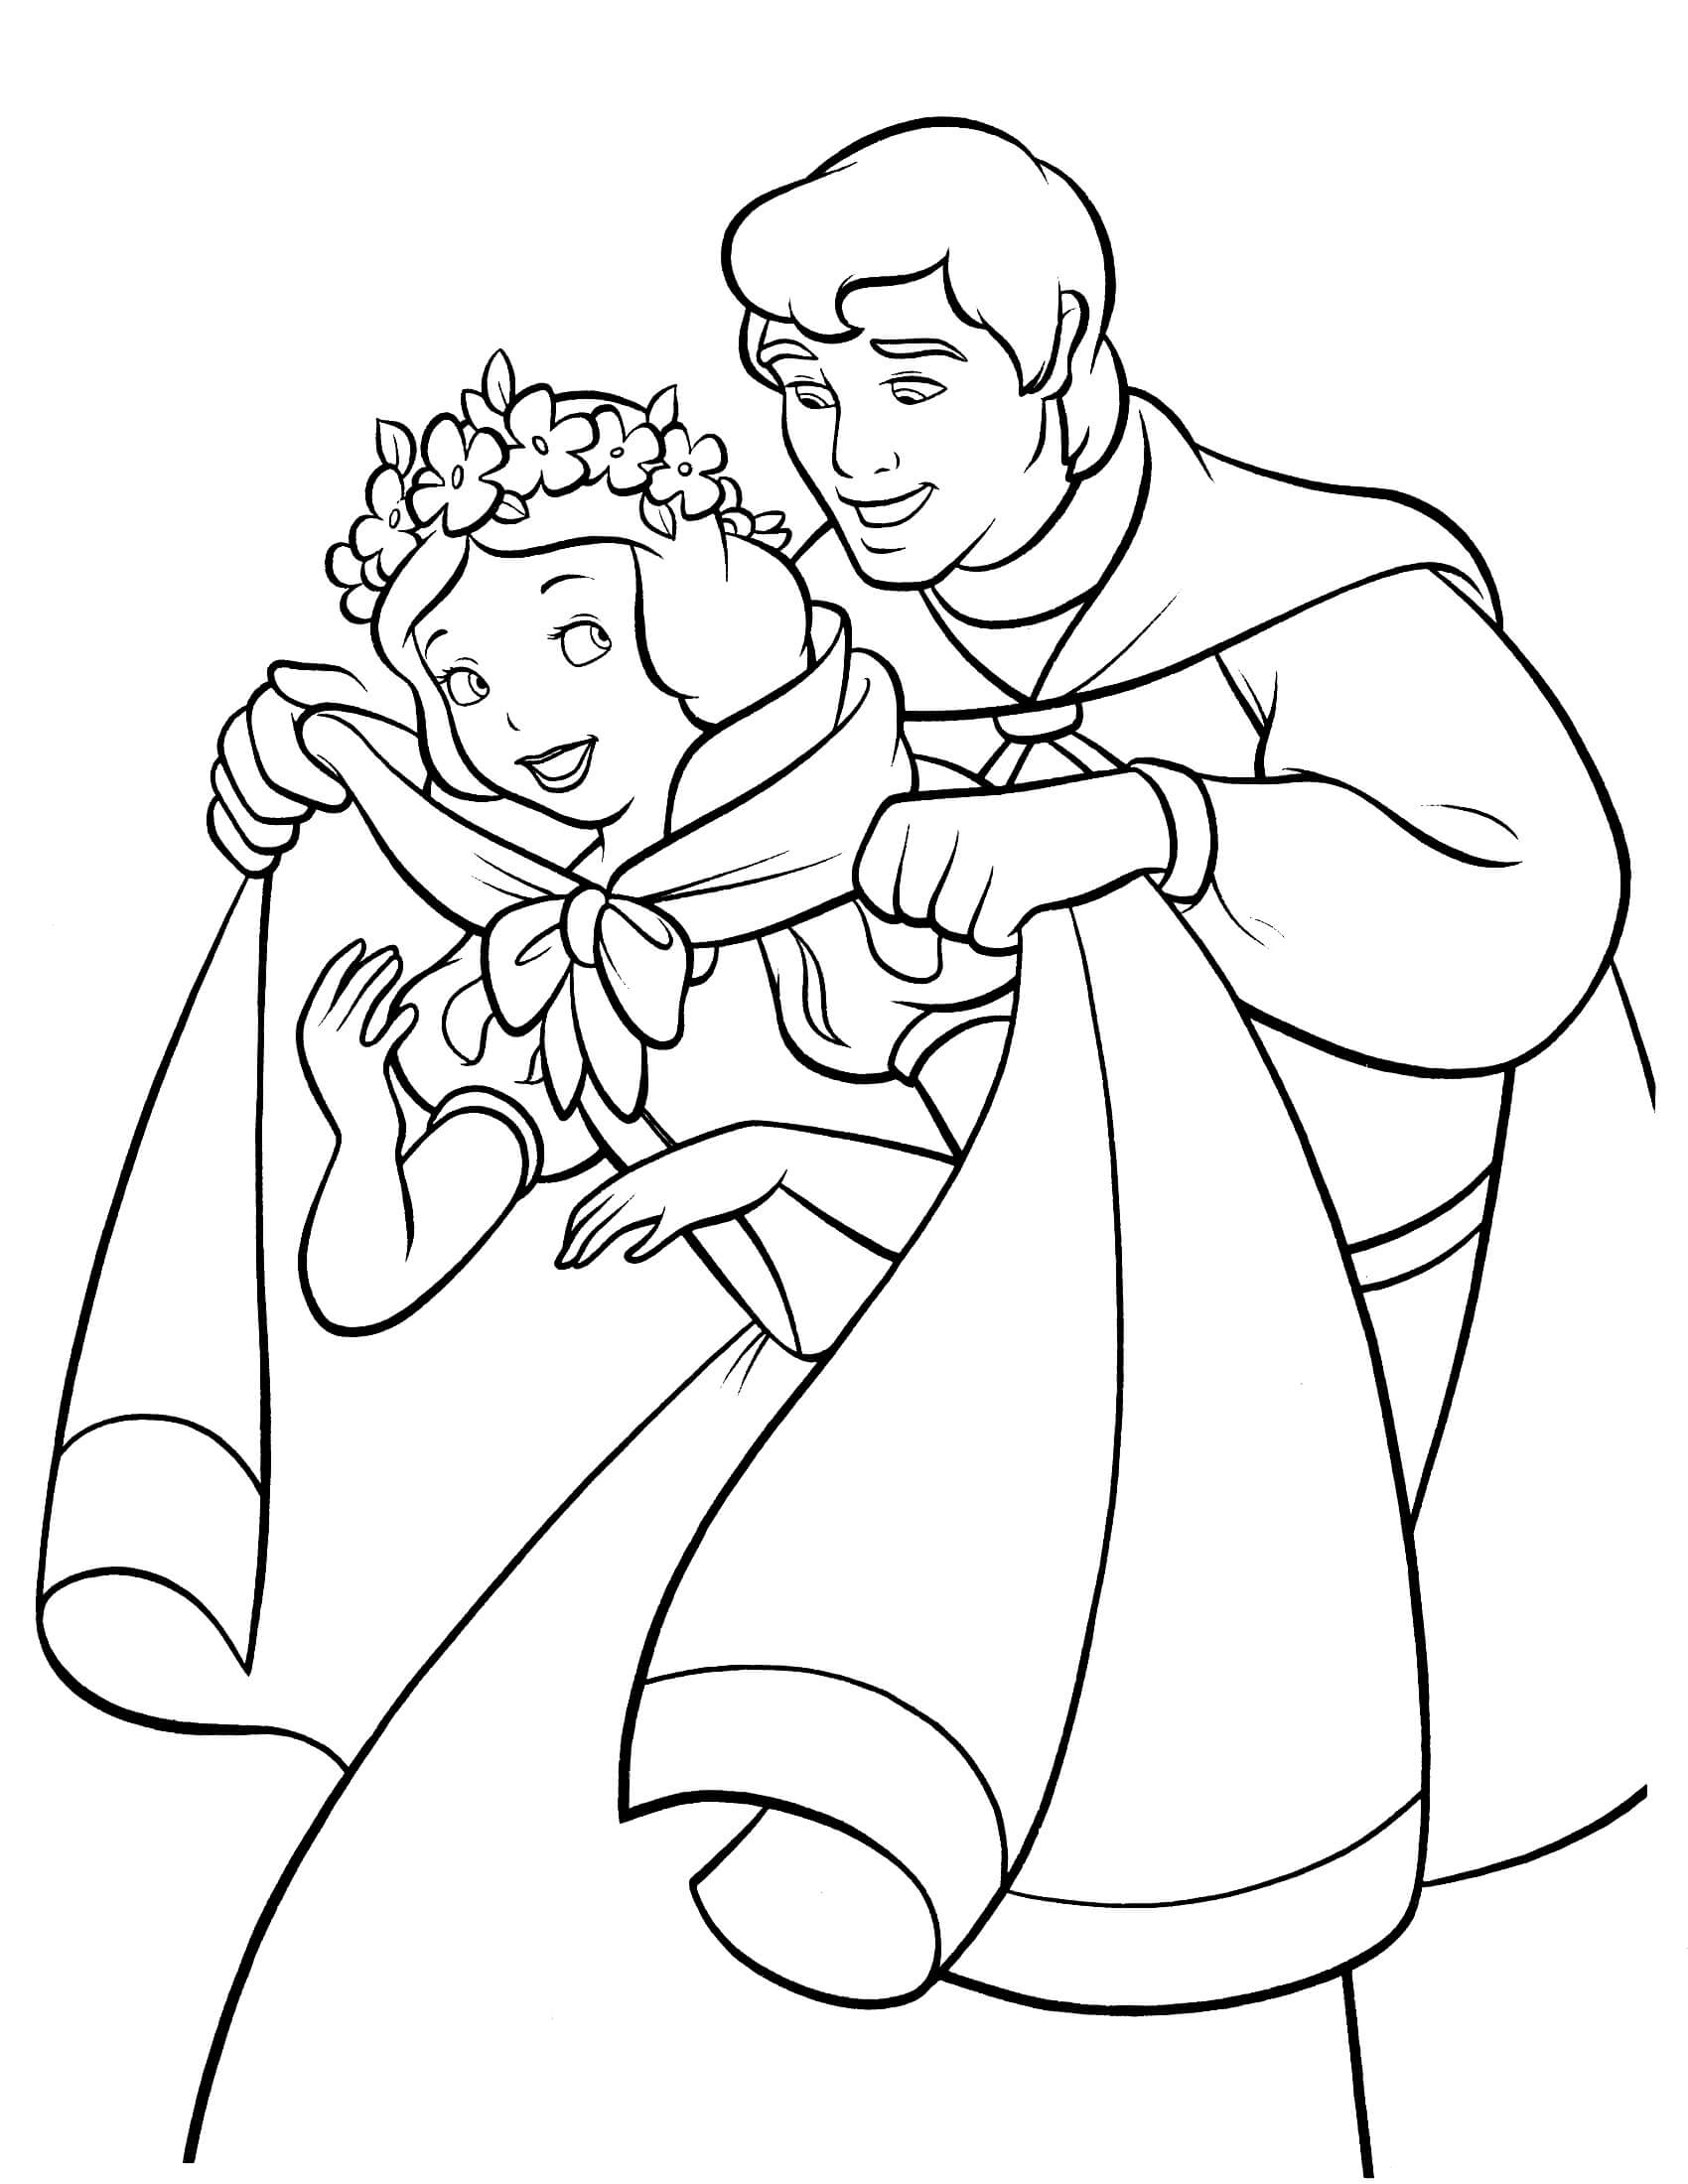 snow white for coloring snow white coloring pages to download and print for free for coloring snow white